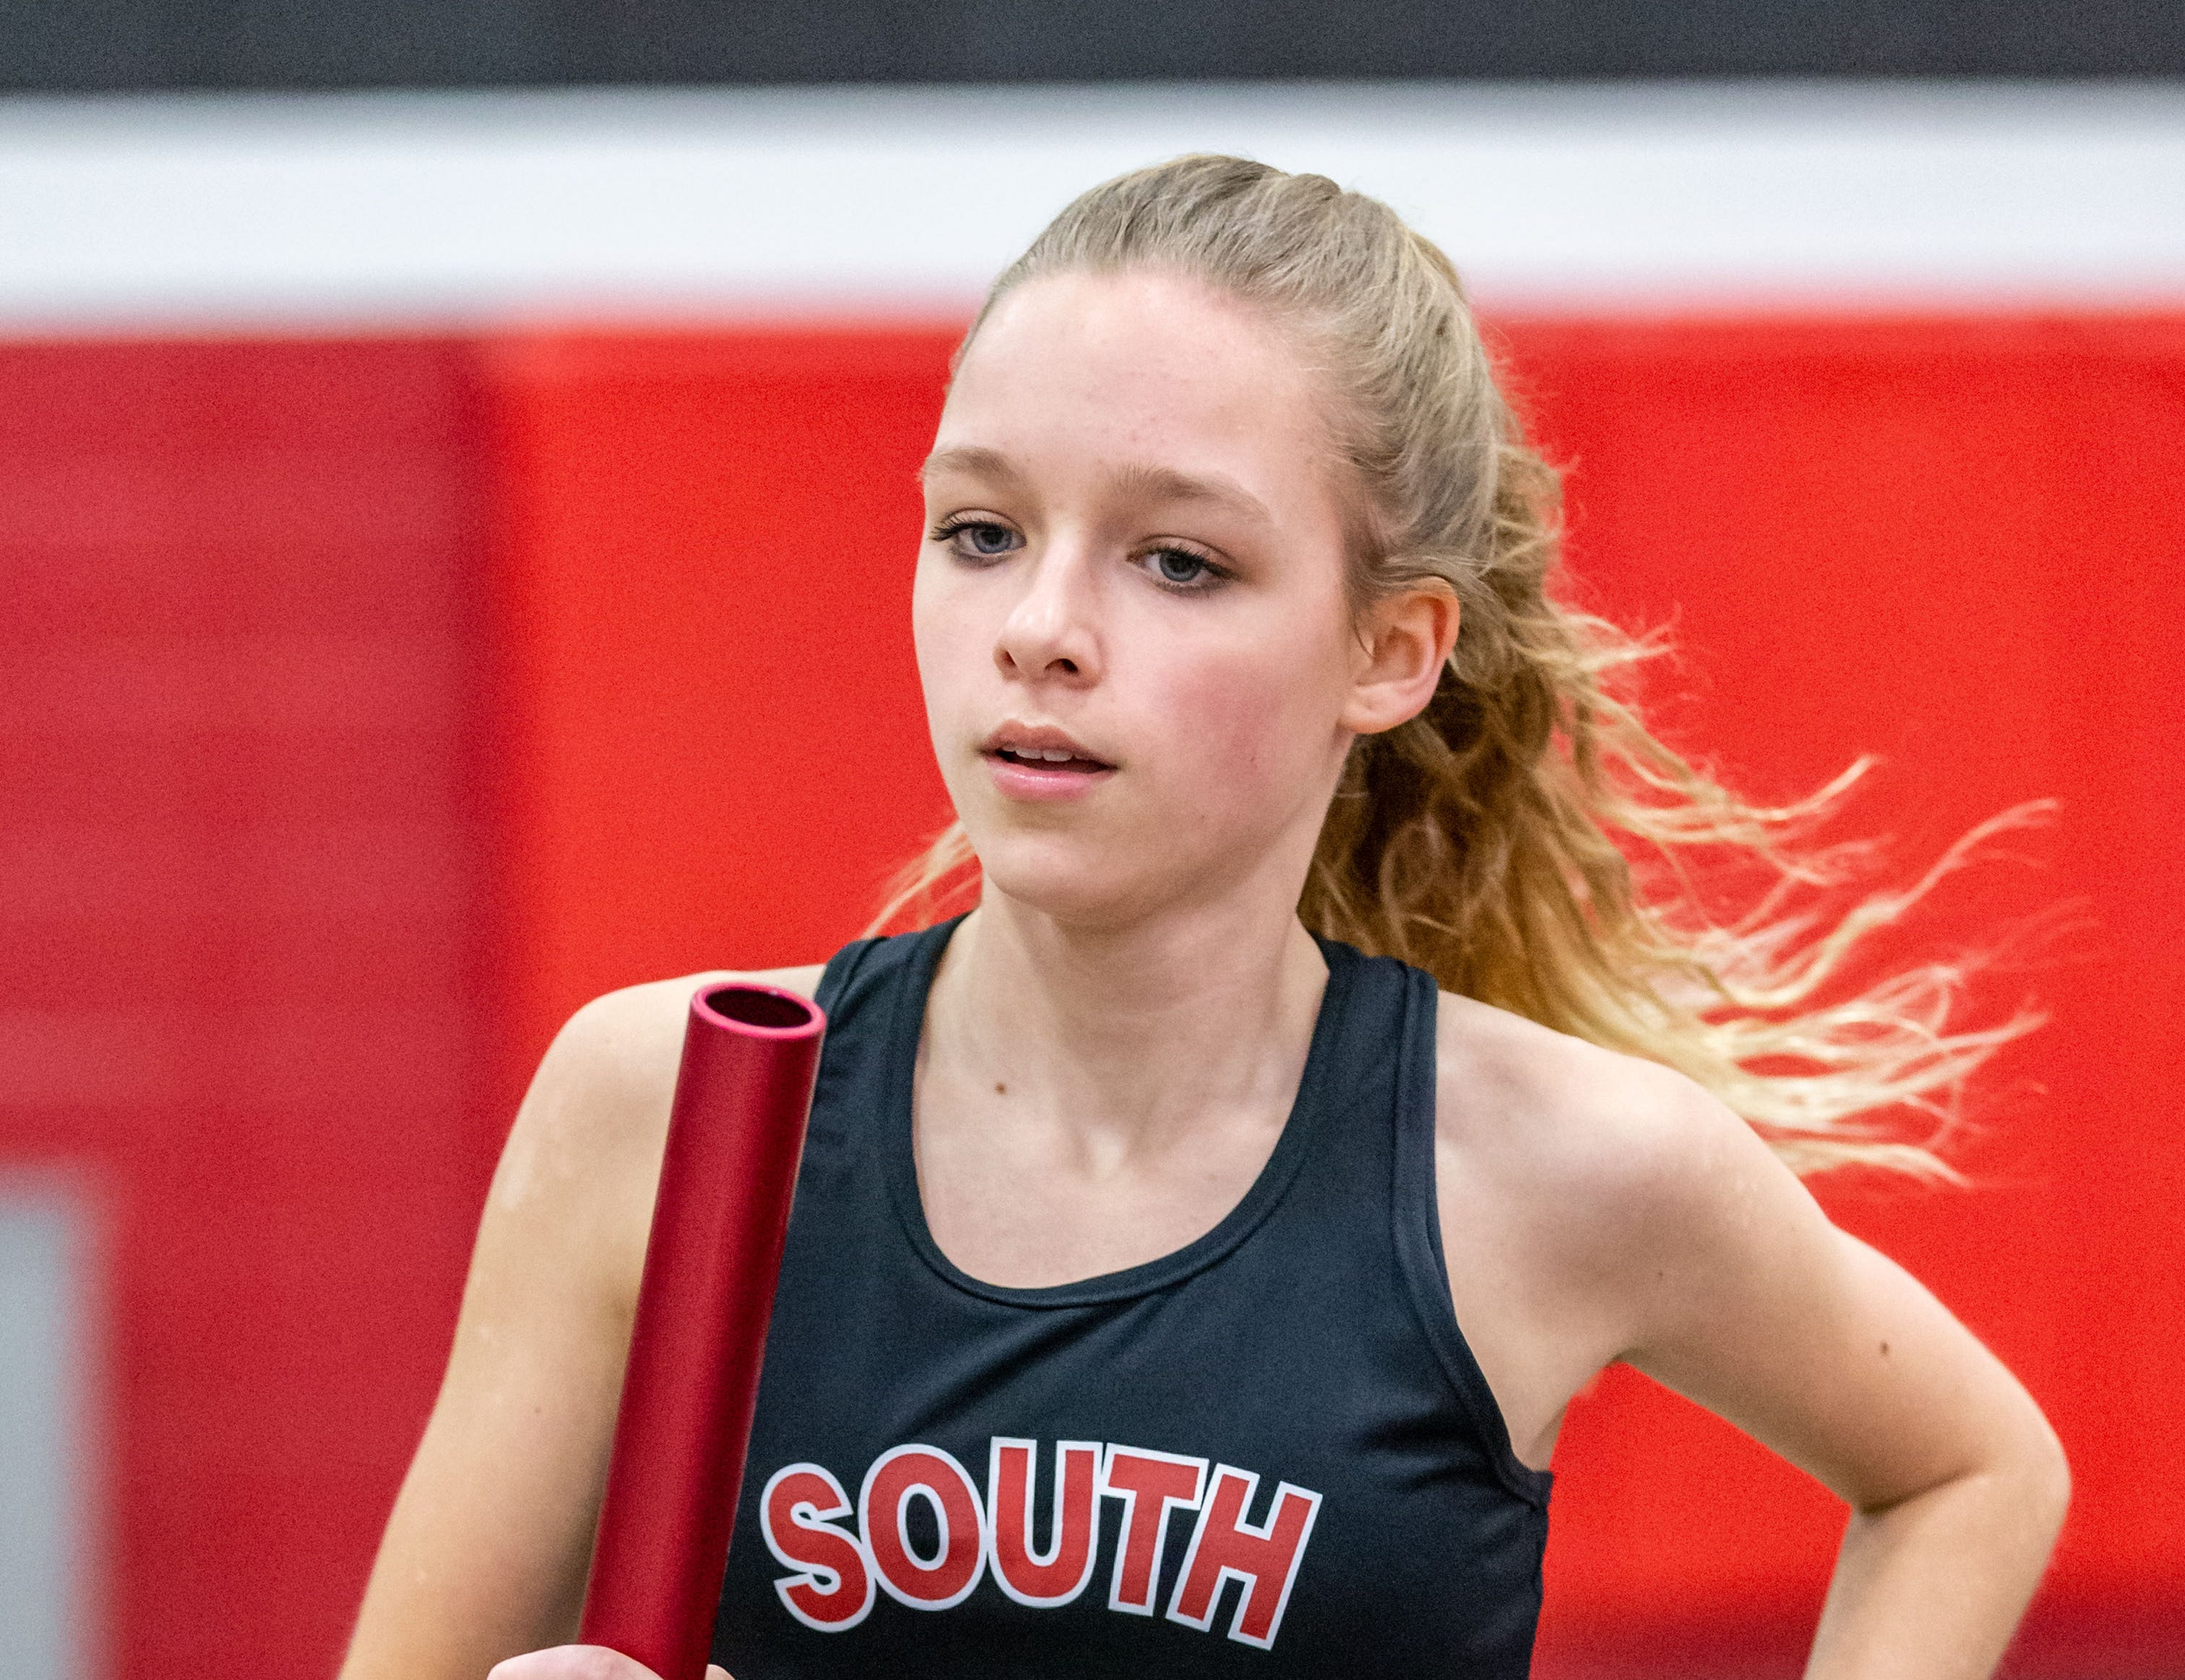 Waukesha South's Jenna Curley competes in the distance medley at the Peter Rempe Cardinal Relays hosted by Waukesha South on Thursday, March 21, 2019.